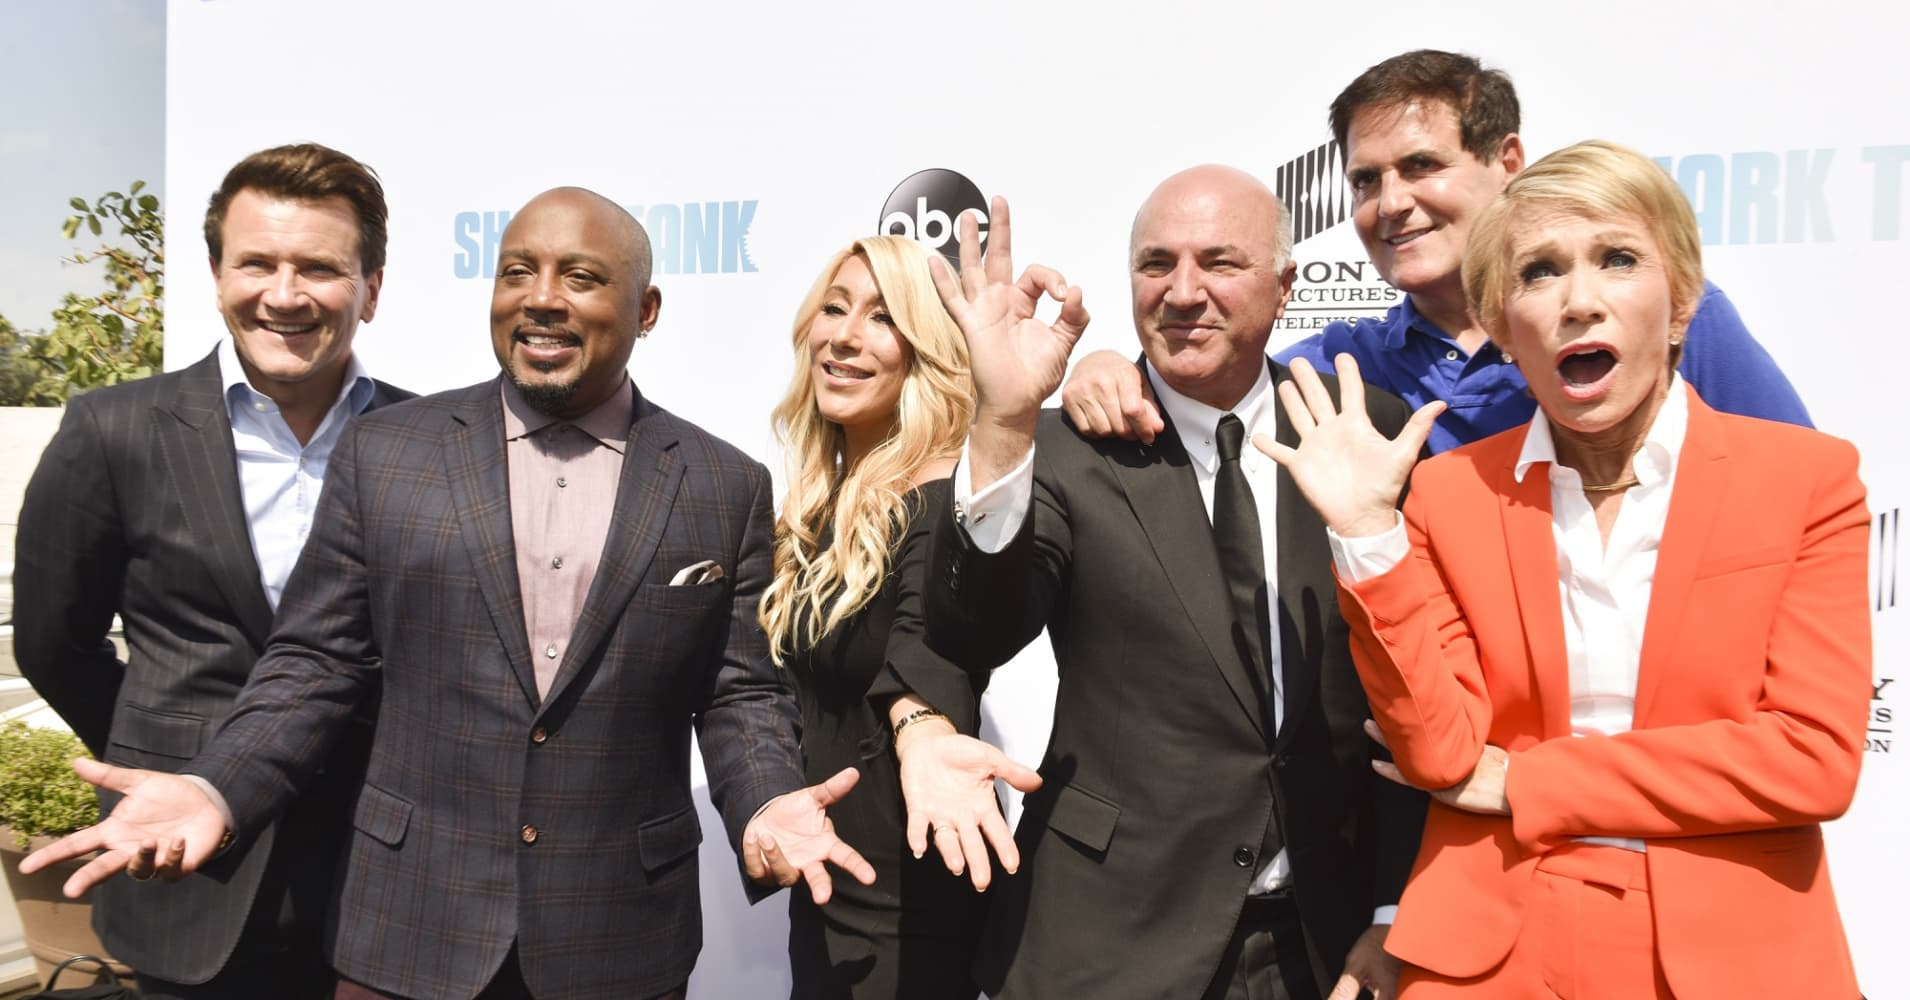 Sharks Robert Herjavec, Daymond John, Lori Greiner, Kevin O'Leary, Mark Cuban, and Barbara Corcoran attend the premiere of ABC's 'Shark Tank' Season 9 at The Paley Center for Media on September 20, 2017 in Beverly Hills, California.